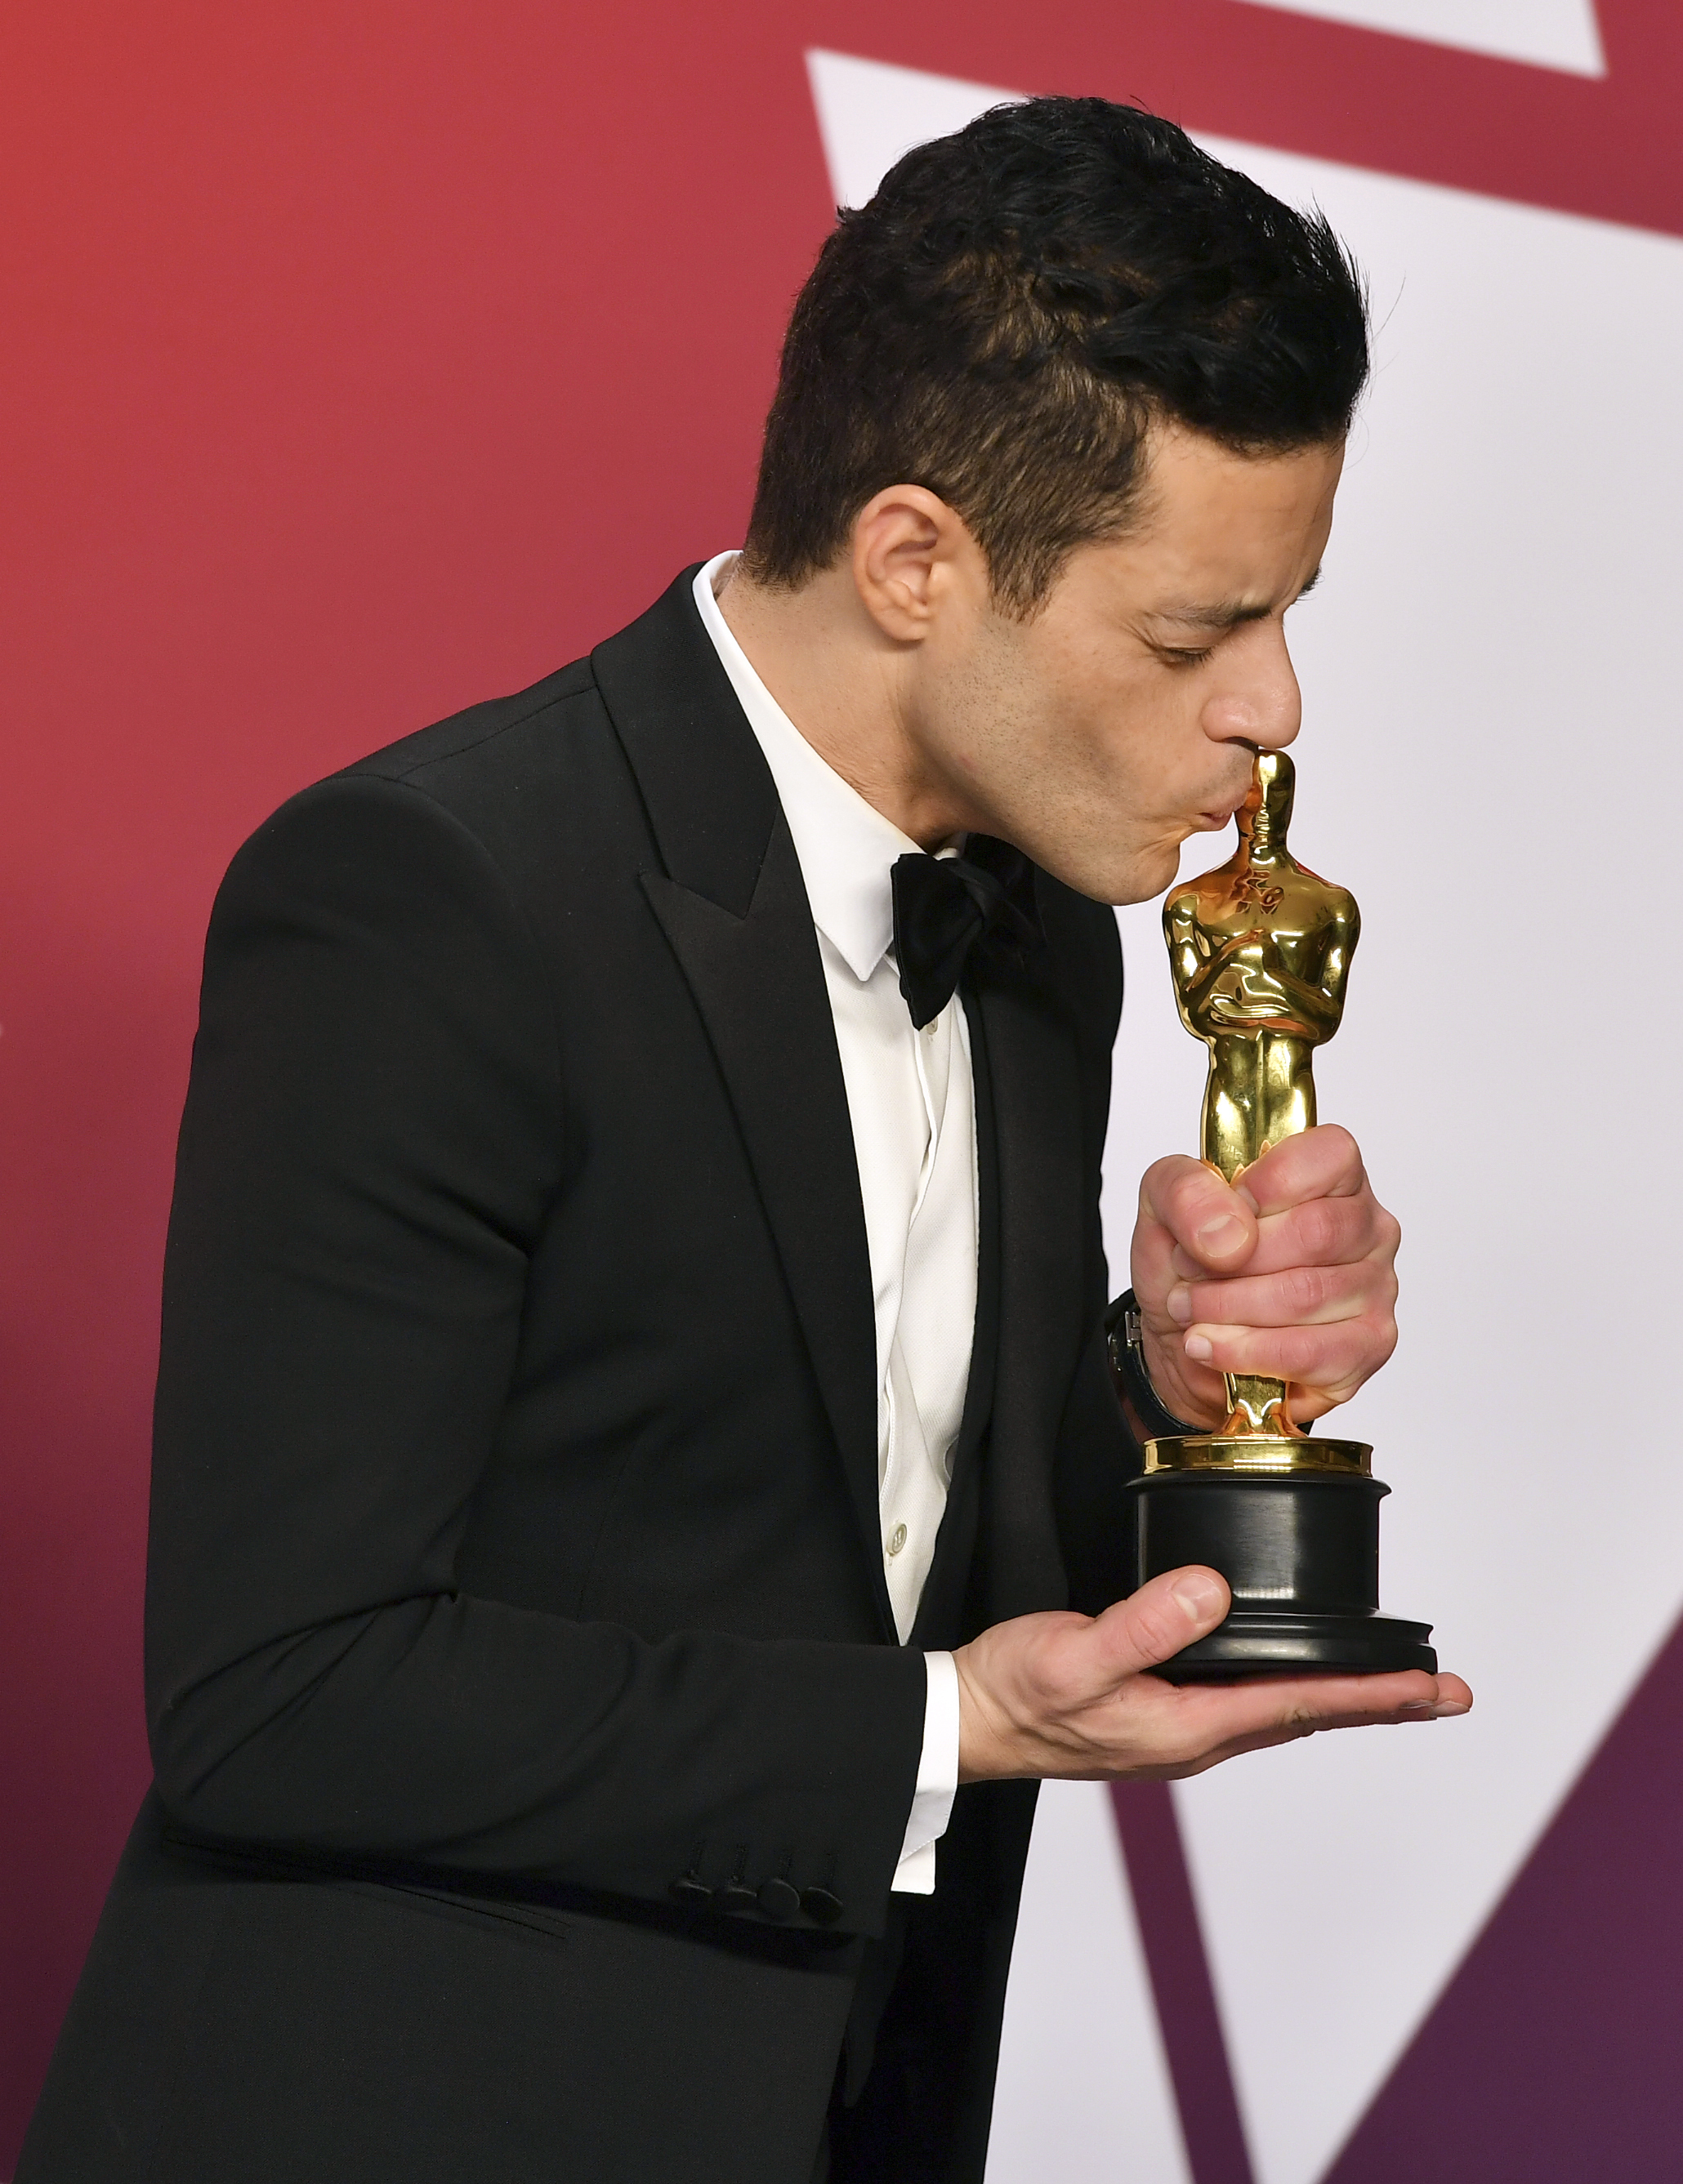 Next James Bond Looking To Cast Oscar Winner Rami Malek As Villain